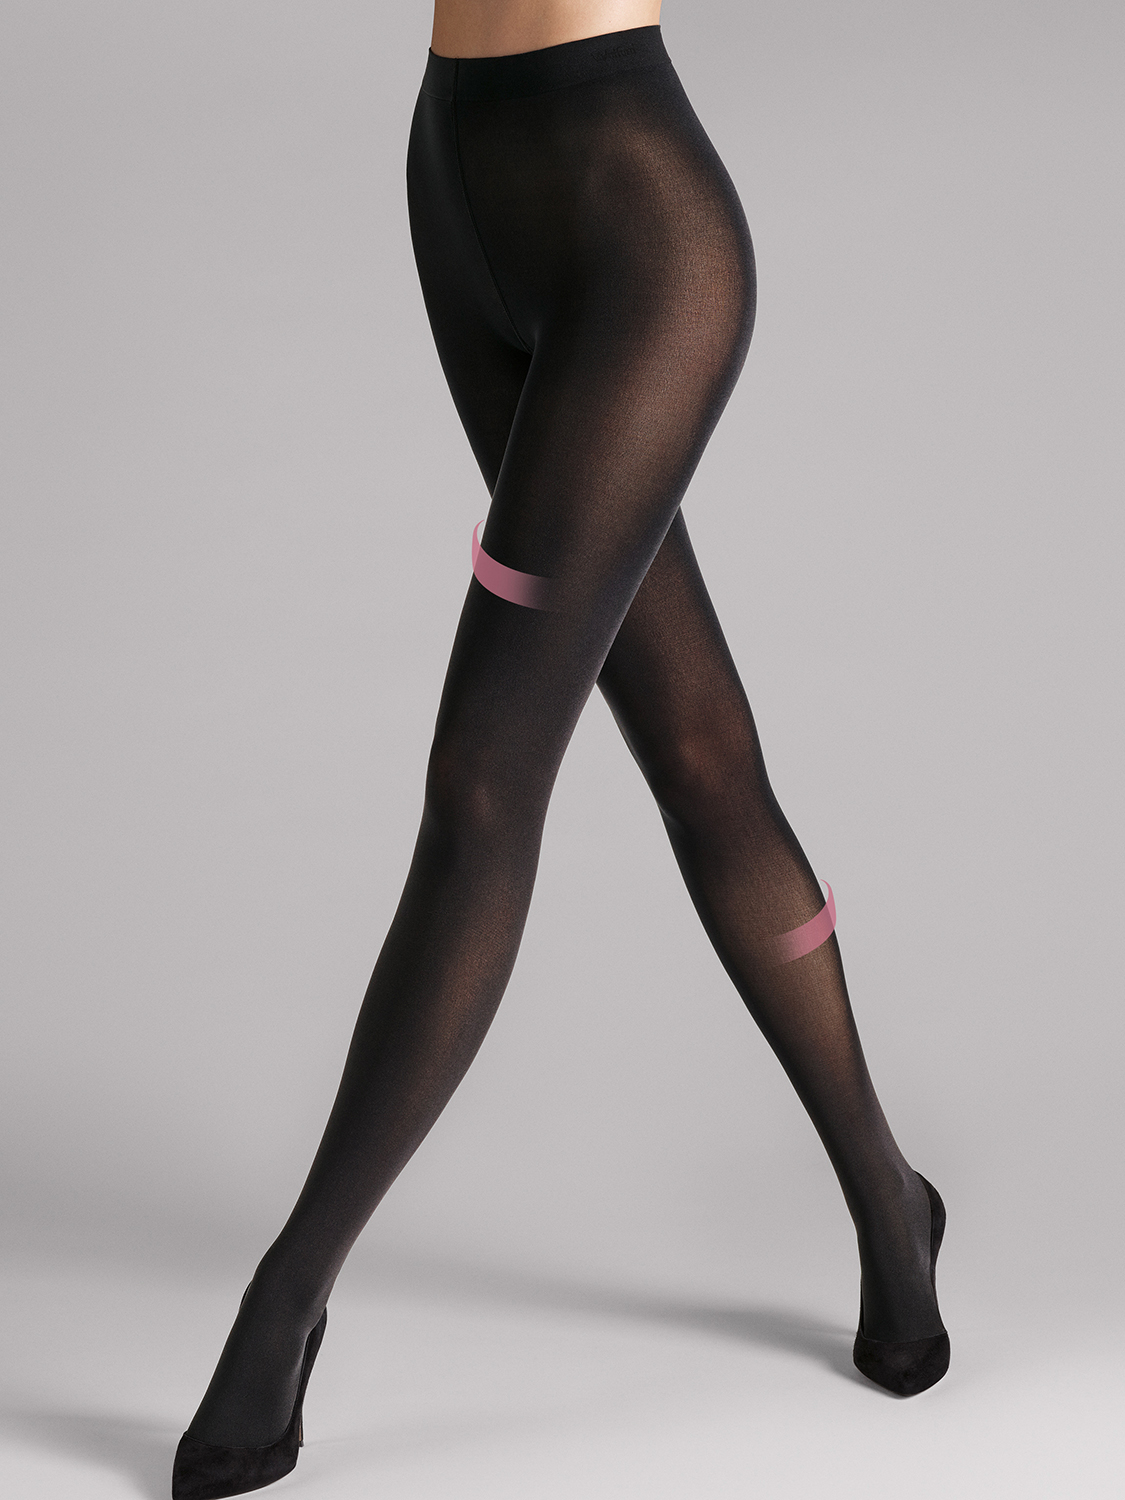 Колготы individual 50 leg support tights фото